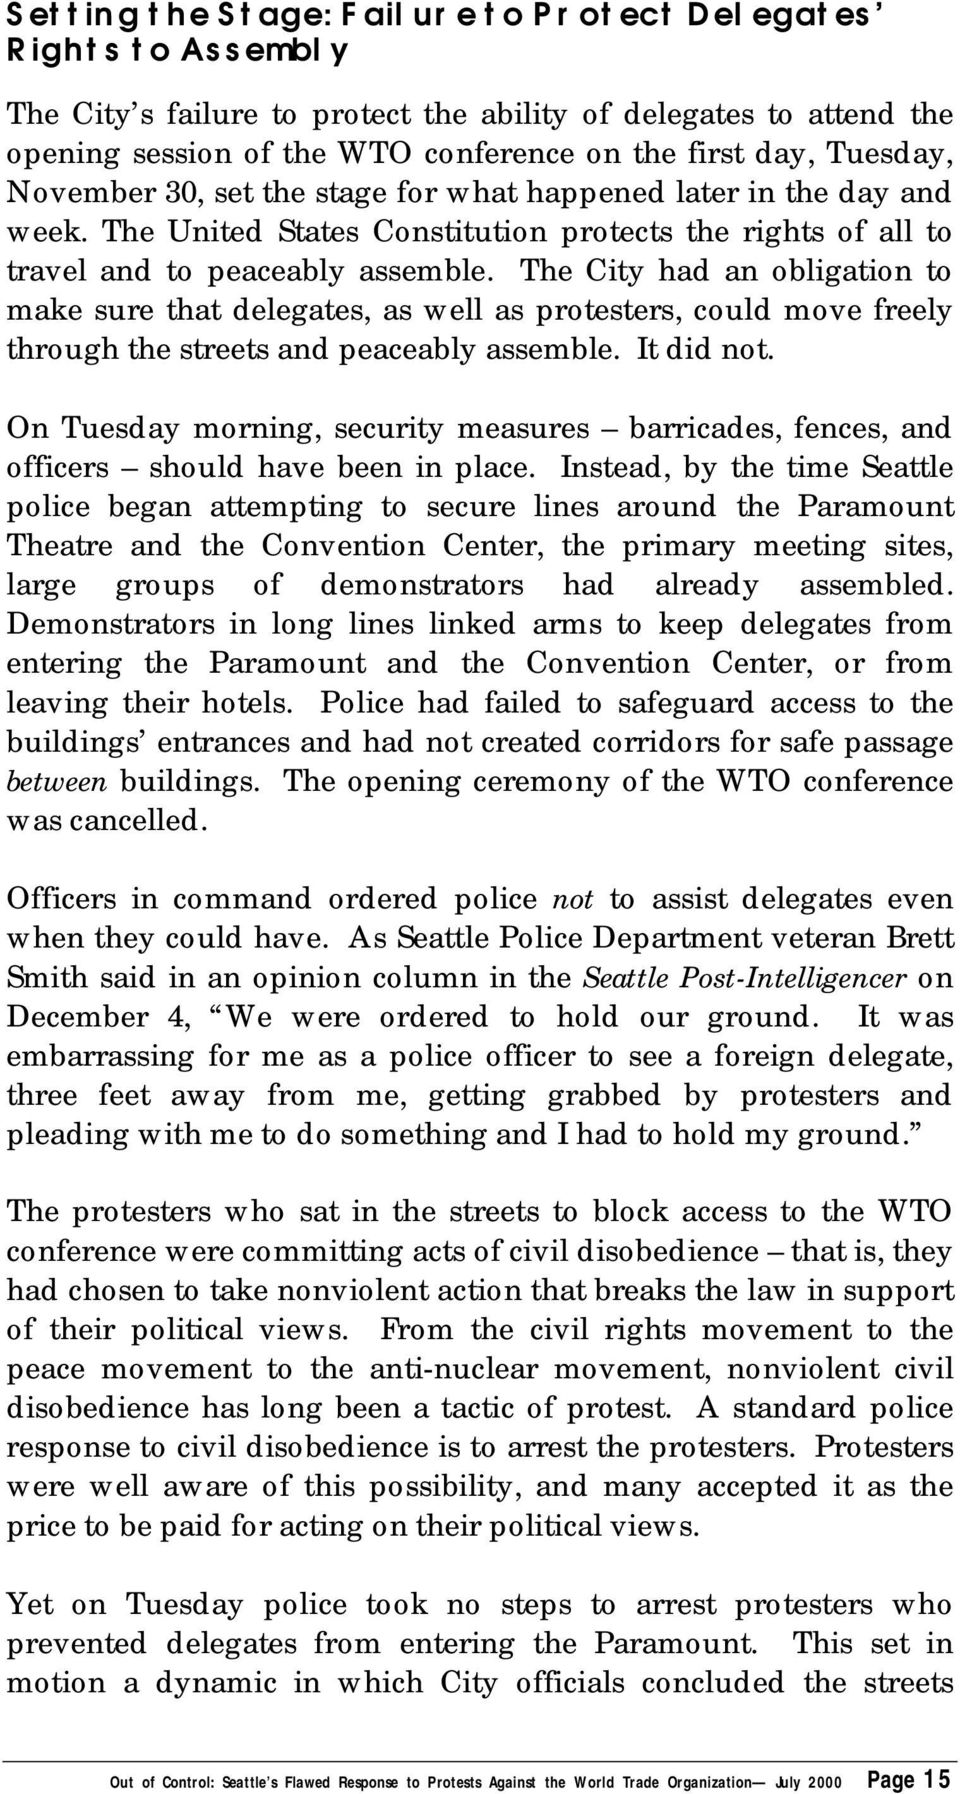 The City had an obligation to make sure that delegates, as well as protesters, could move freely through the streets and peaceably assemble. It did not.